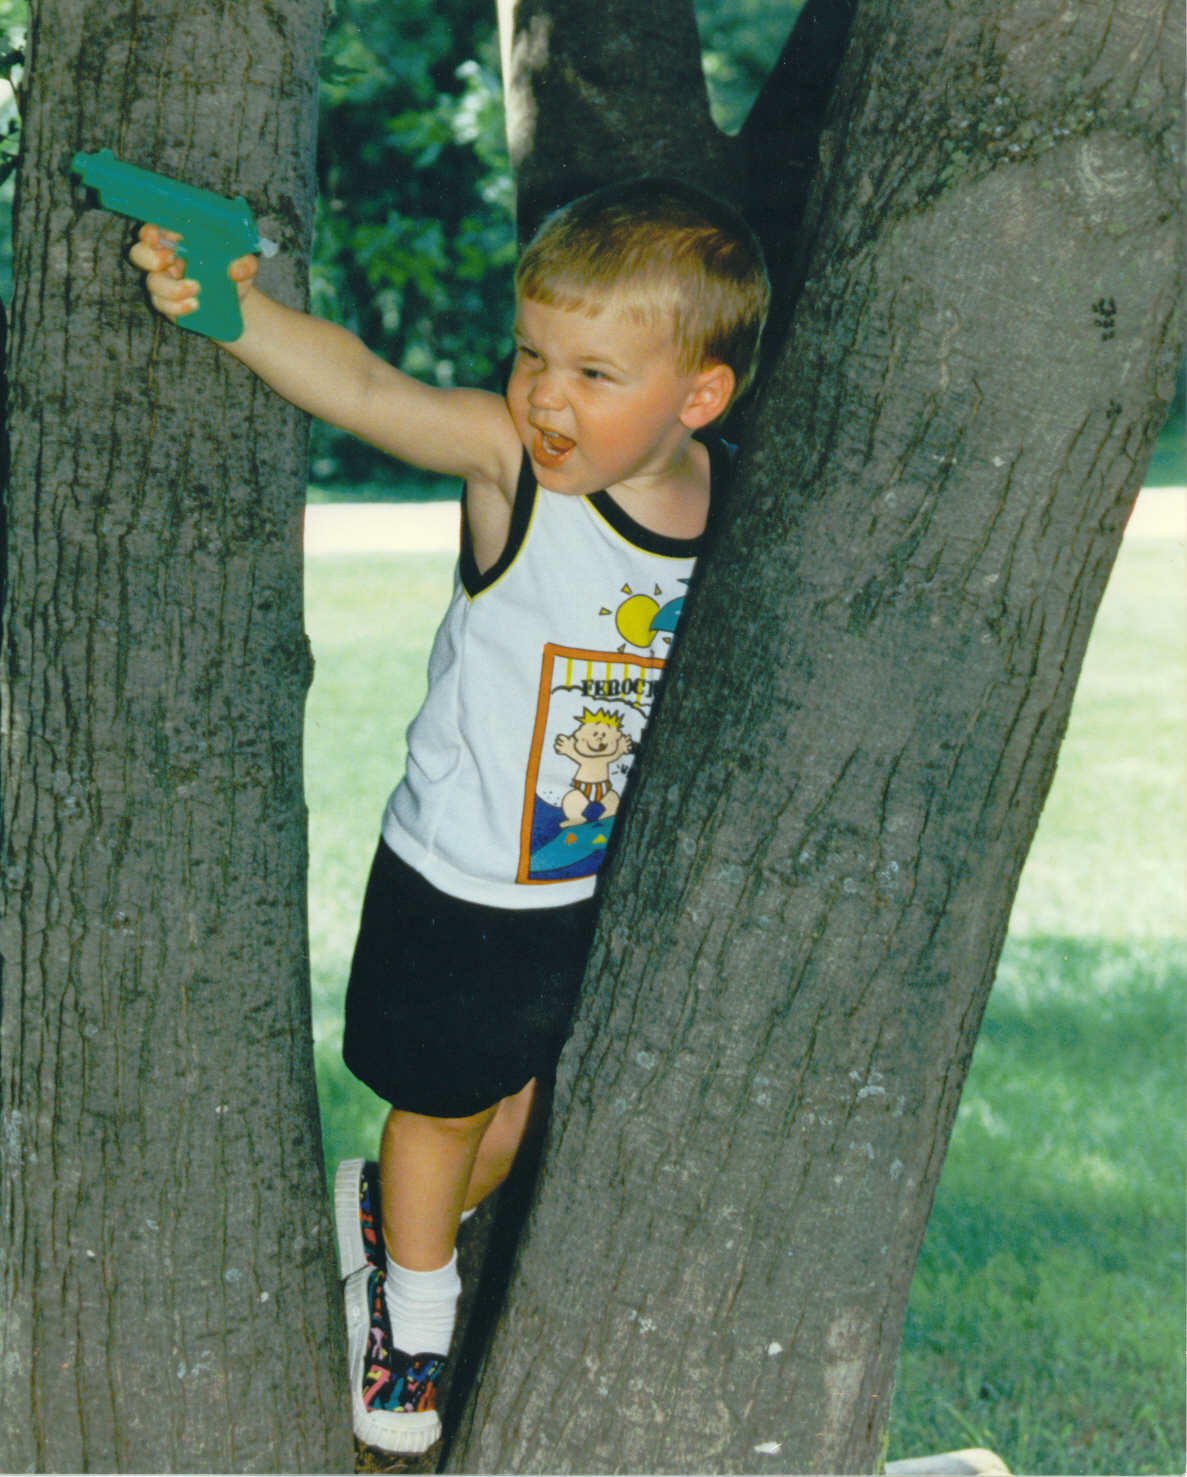 Young JD and his squirt gun